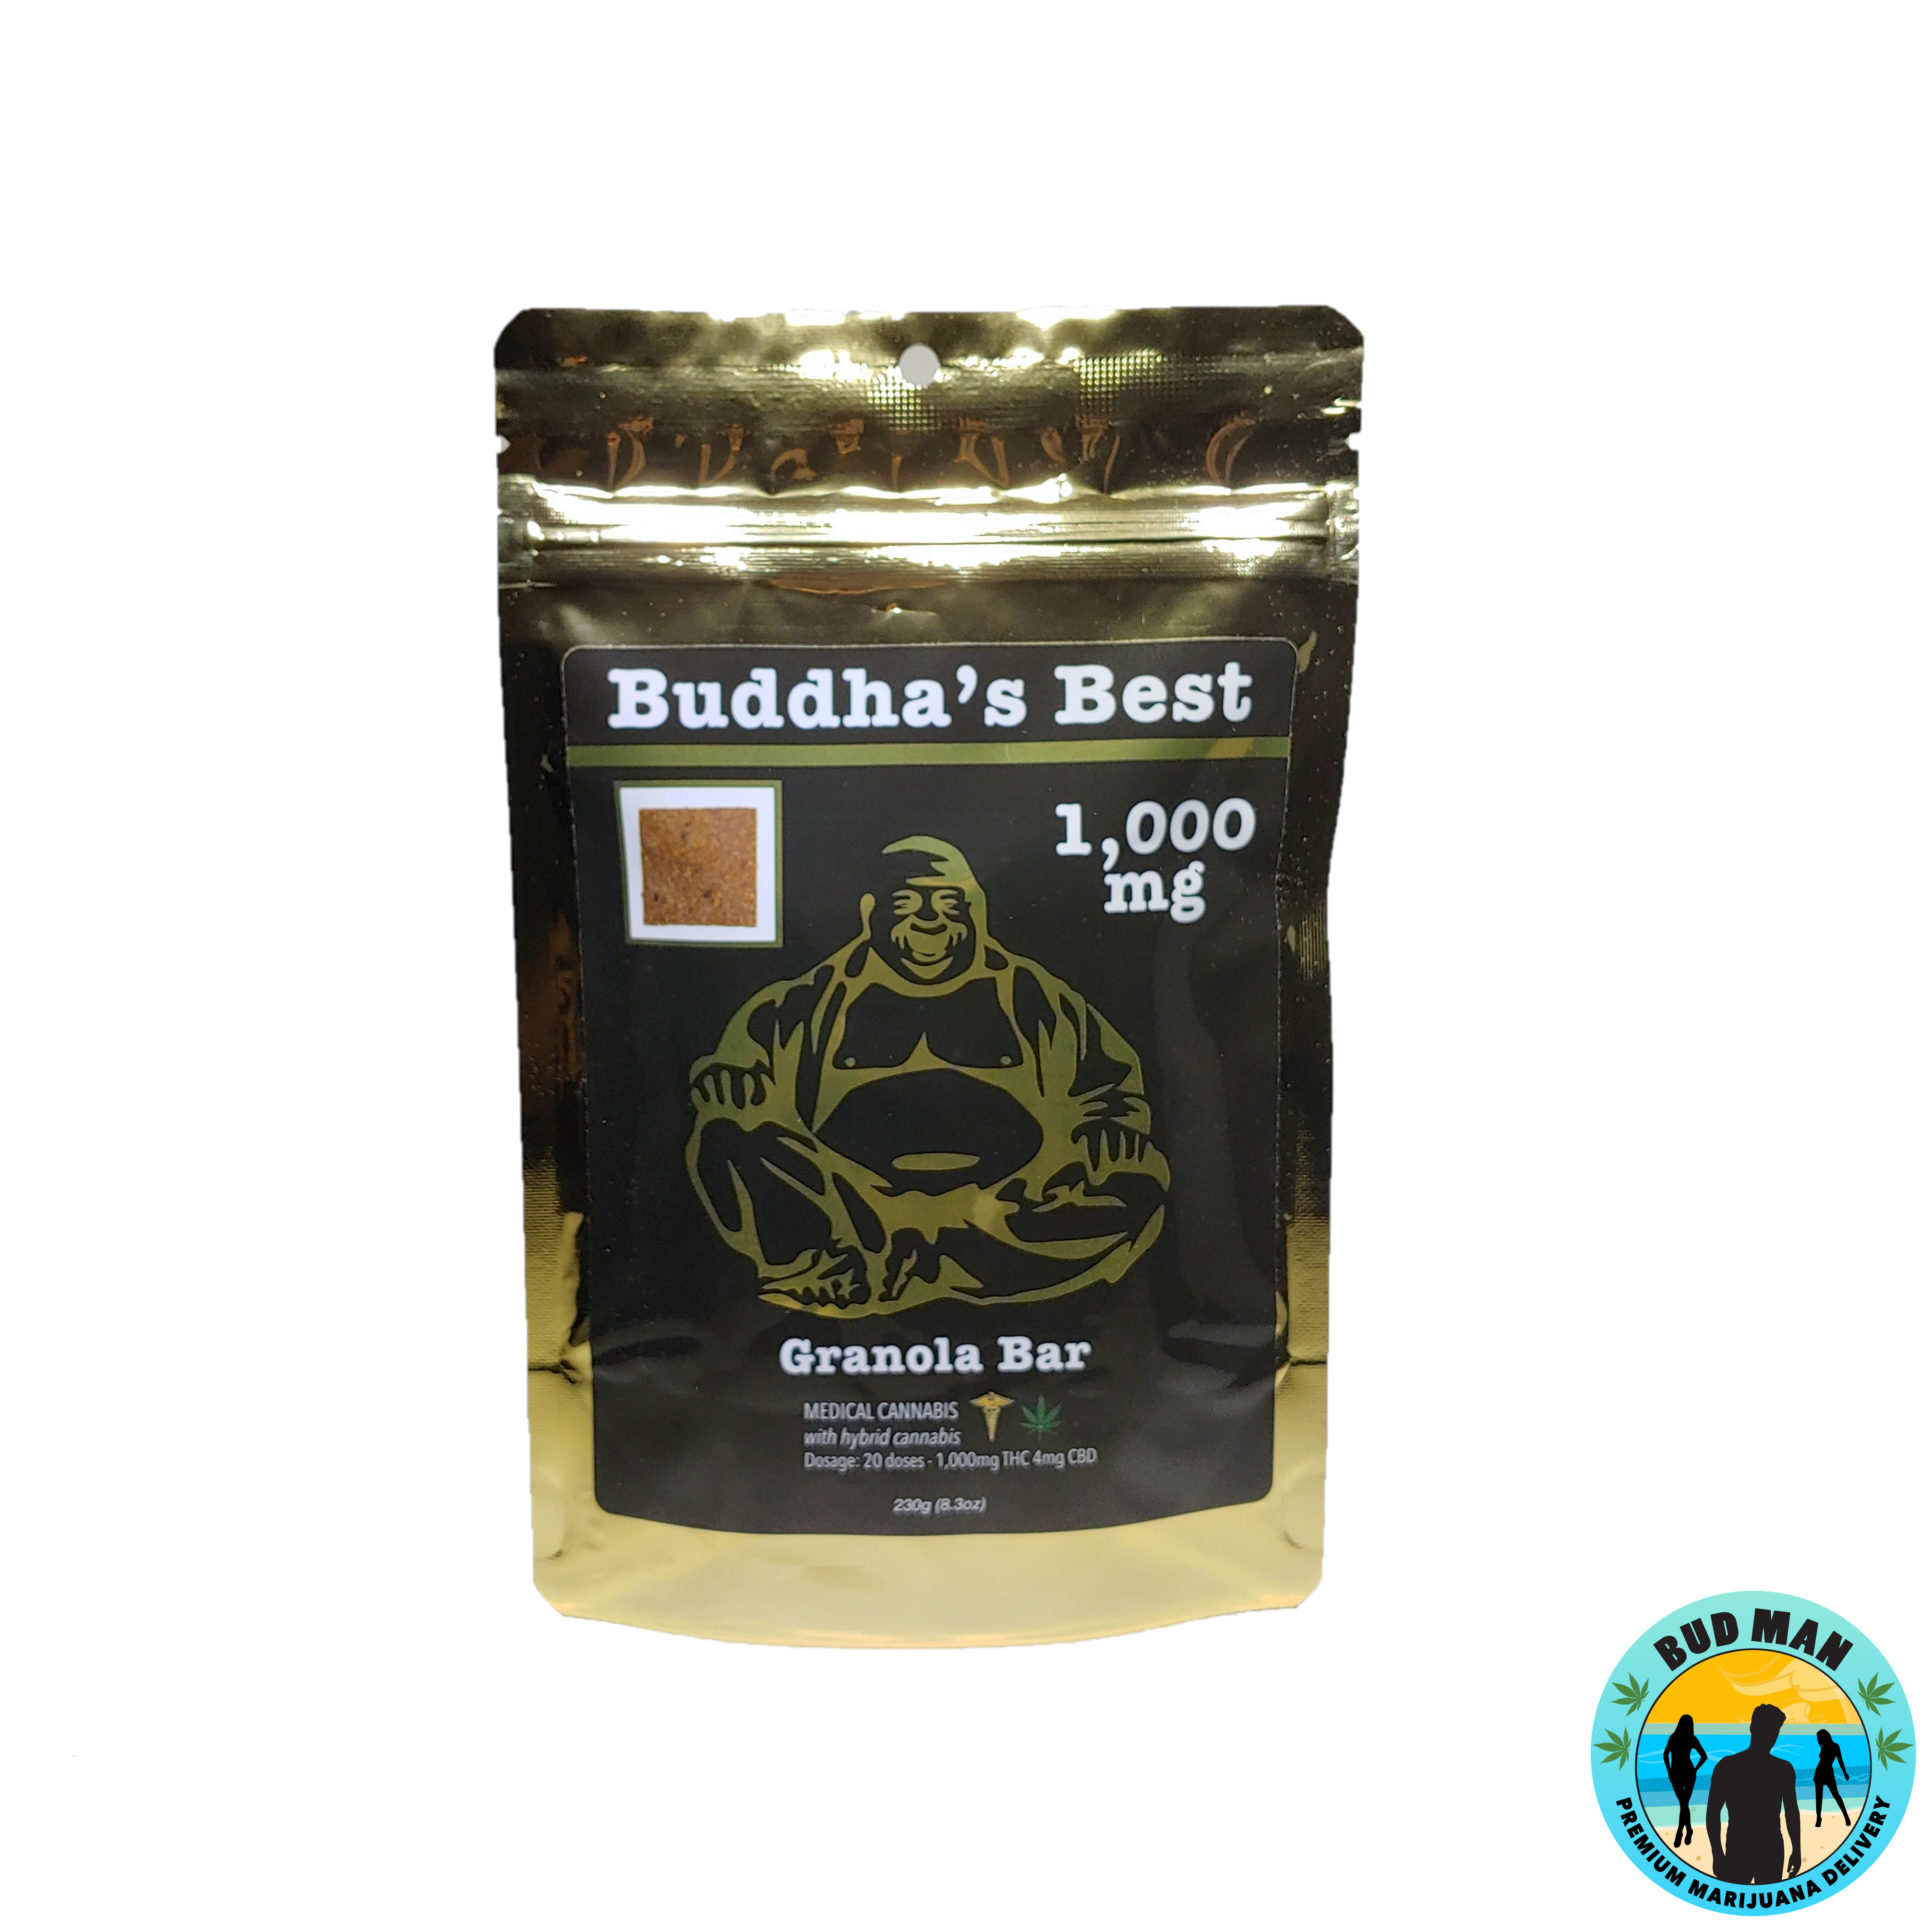 Granola Bar – Buddha's Best Edibles (1,000mg THC)